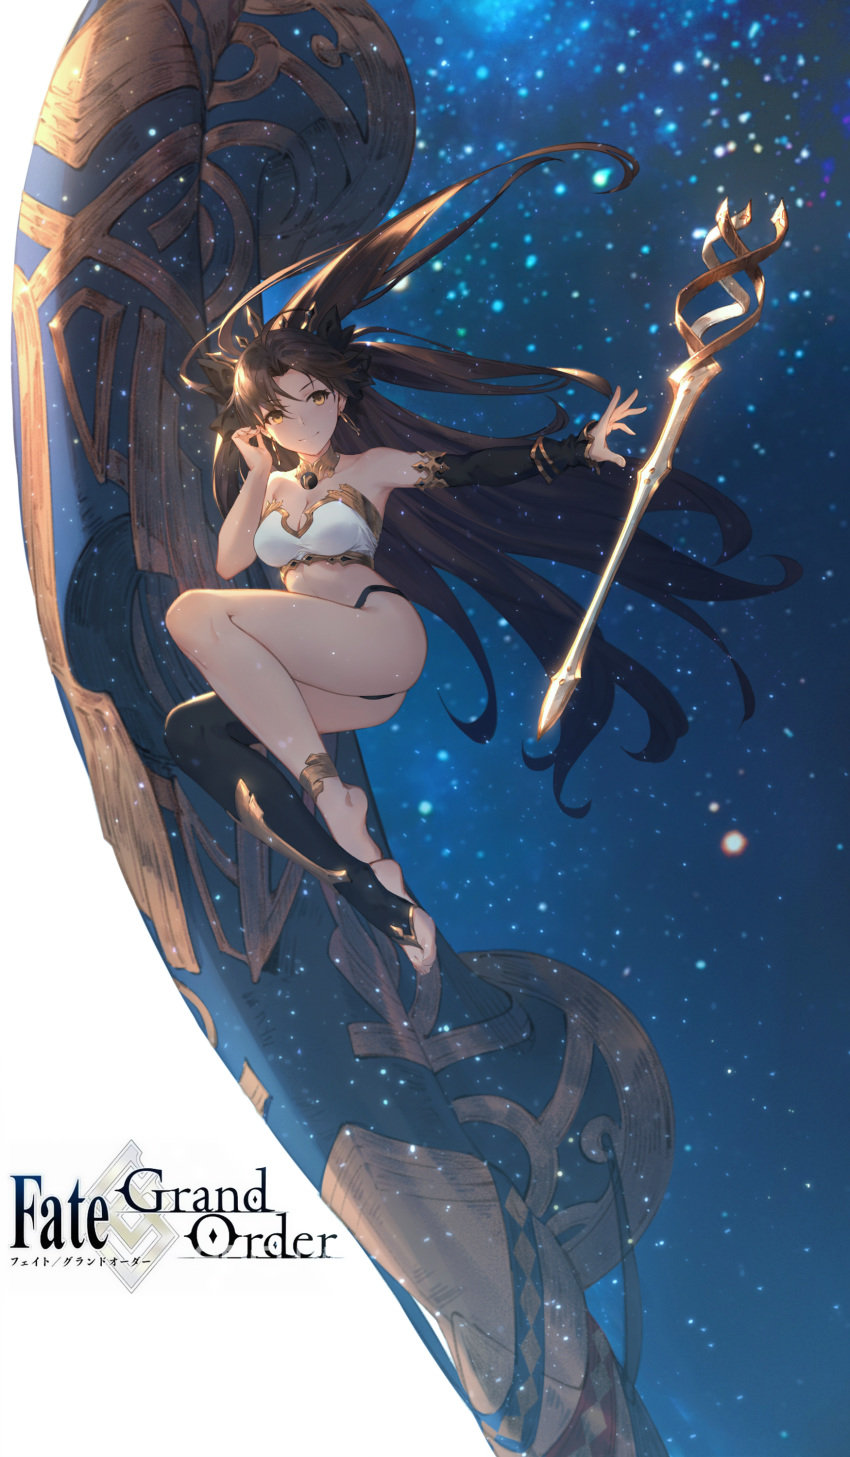 1girl absurdres anklet armlet ass asymmetrical_legwear asymmetrical_sleeves bangs barefoot black_bikini_bottom black_bow black_hair bow breasts copyright_name crown detached_collar detached_sleeves earrings fate/grand_order fate_(series) feet hair_bow heavenly_boat_maanna highres hoop_earrings ishtar_(fate)_(all) ishtar_(fate/grand_order) jewelry legs long_hair long_legs looking_at_viewer navel neck_ring parted_bangs single_detached_sleeve single_thighhigh smile solo space star_(sky) sword thigh-highs thighs tiara toeless_legwear two_side_up weapon white_bikini_top yellow_eyes yijian_ma